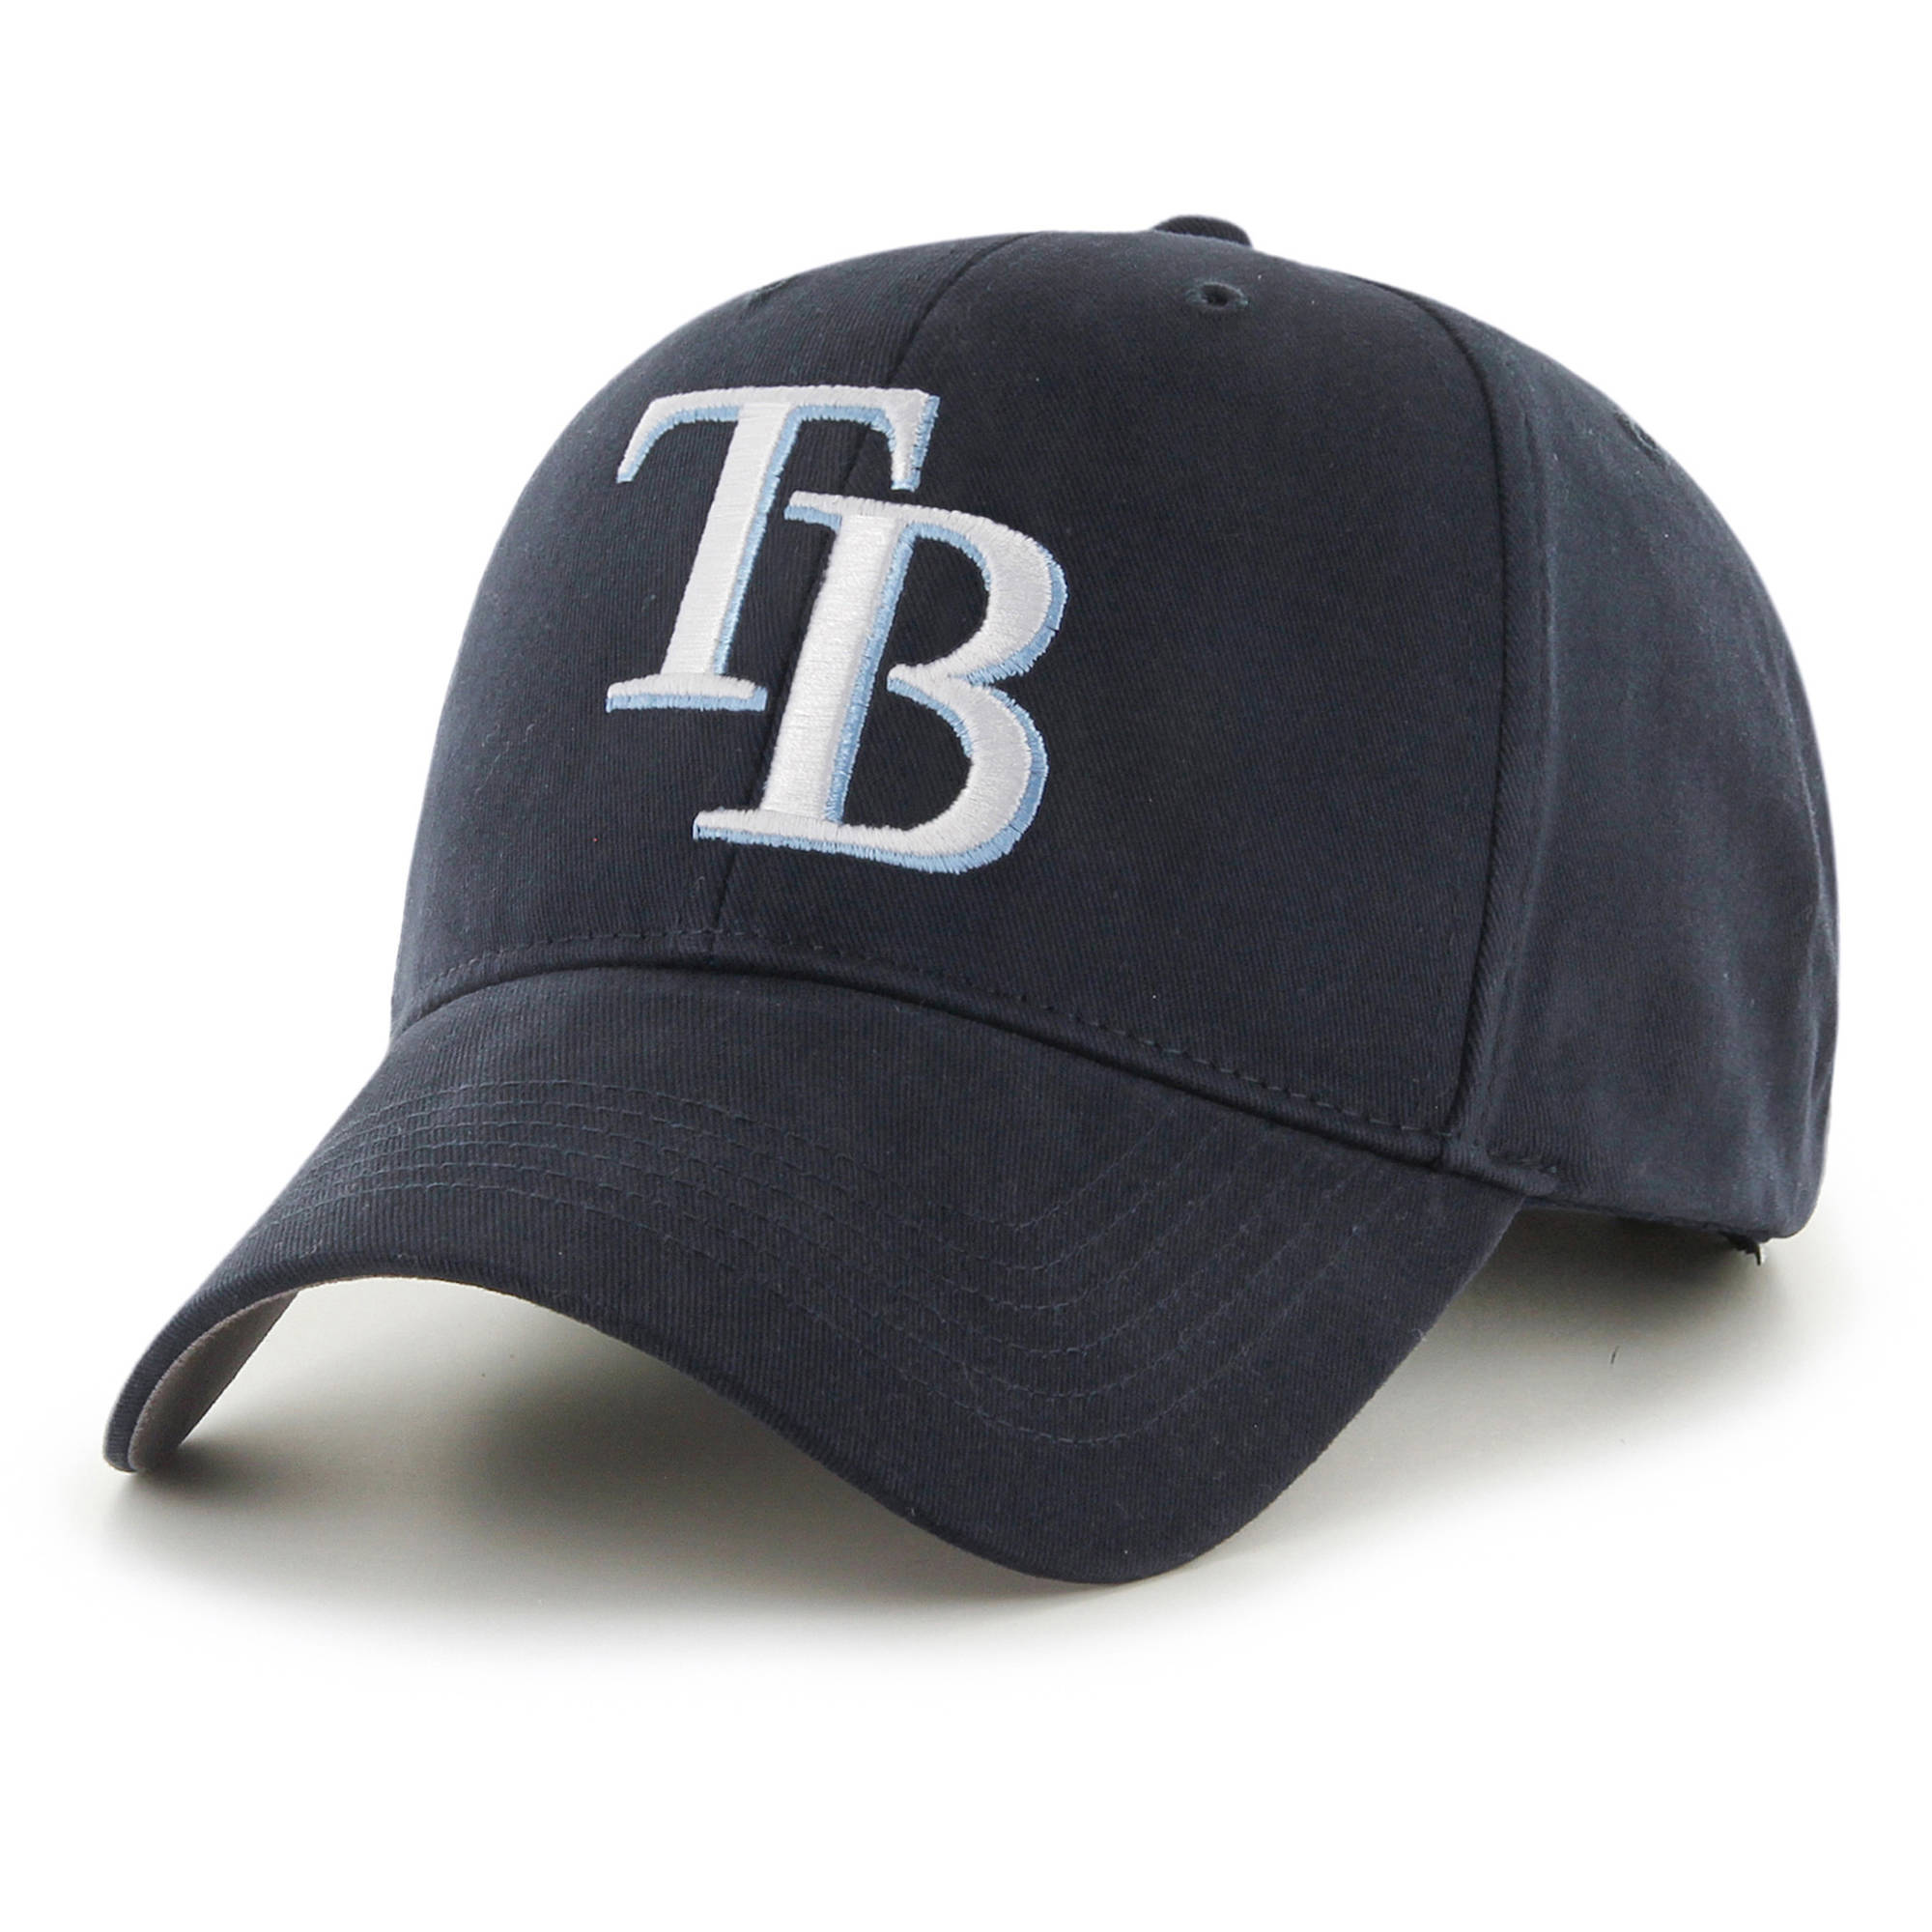 MLB Tampa Bay Rays Basic Cap / Hat by Fan Favorite